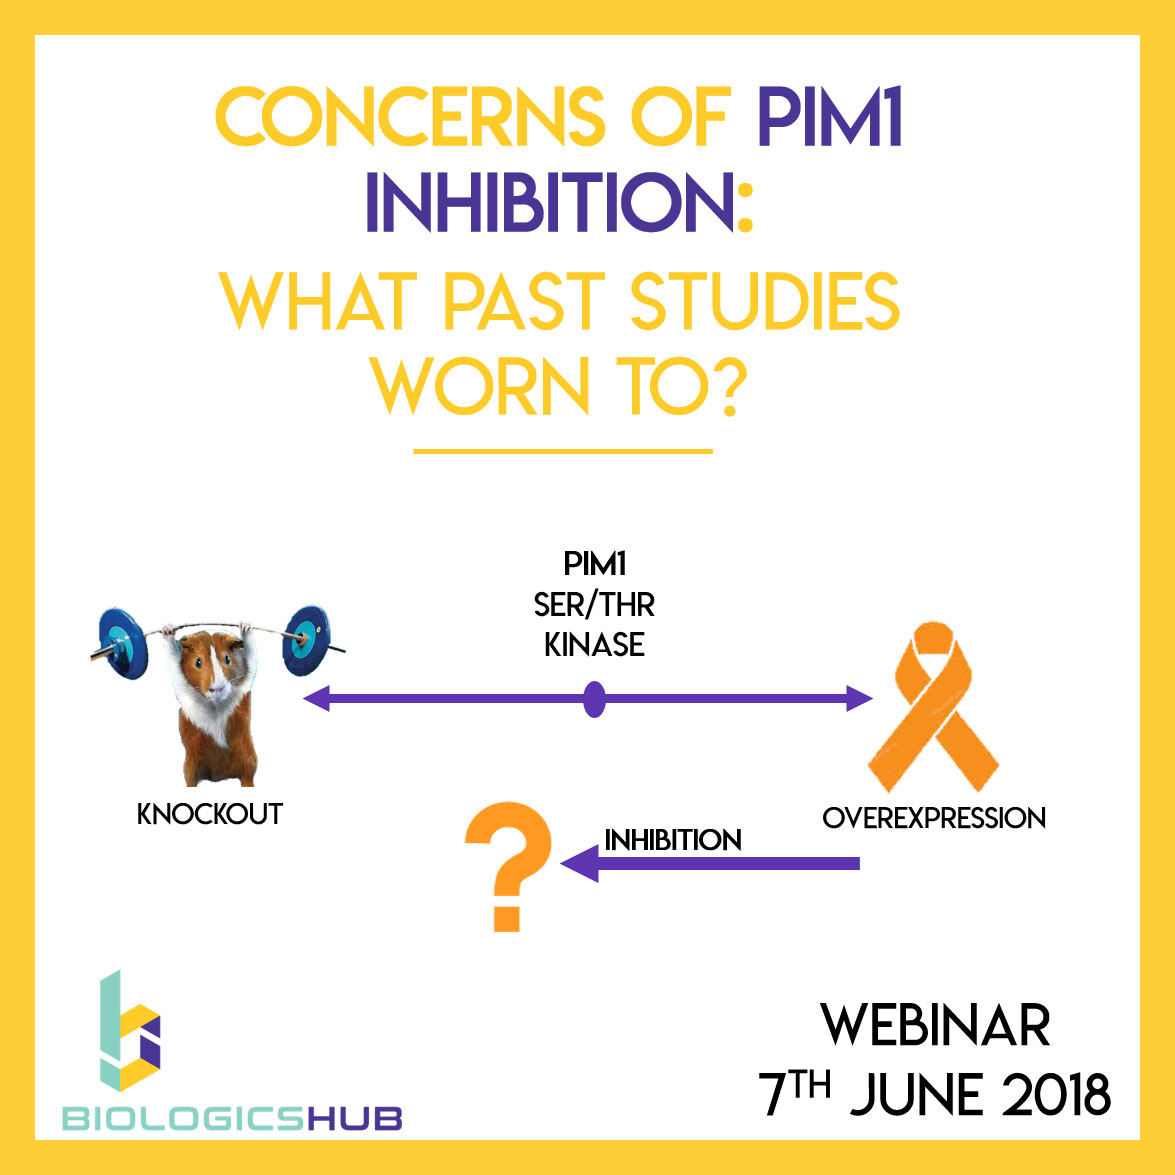 Webinar: Concerns Of PIM1 Inhibition: What Do Past Studies Worn To?